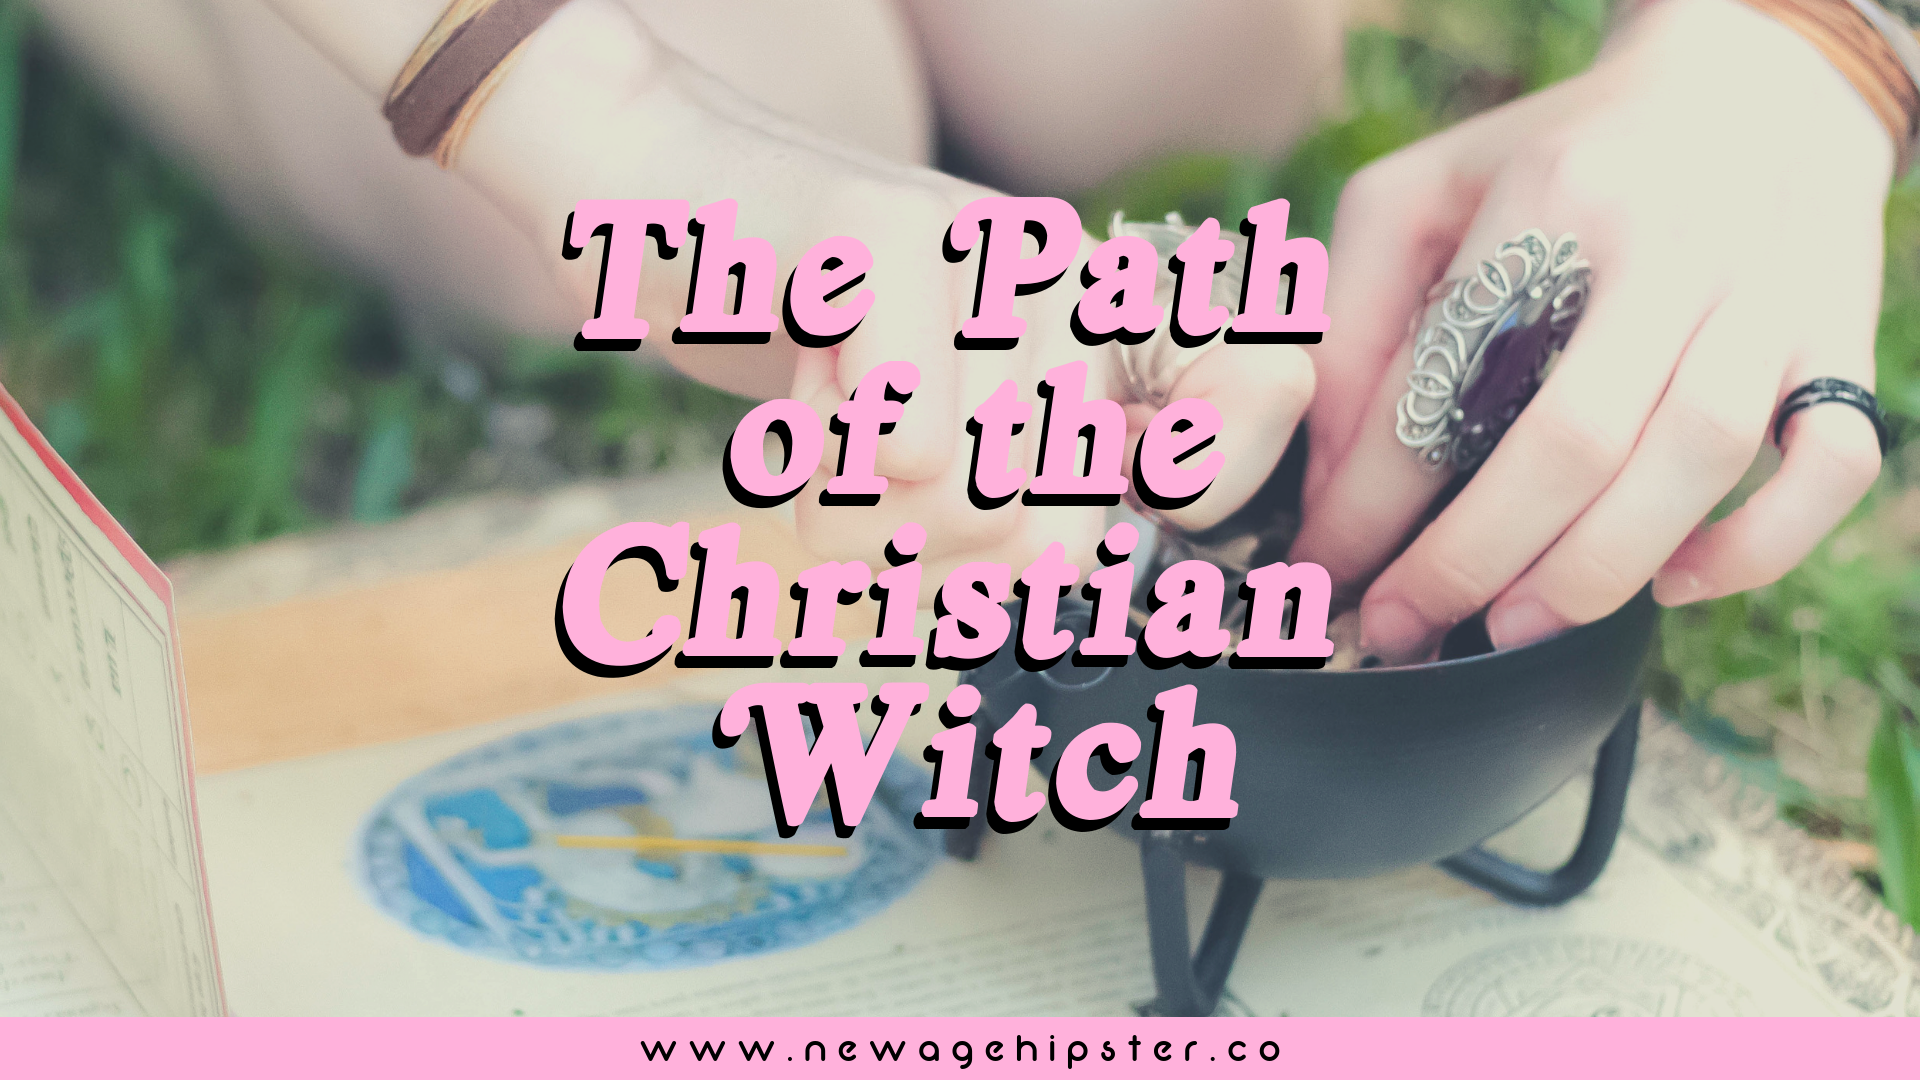 The Path of the Christian Witch